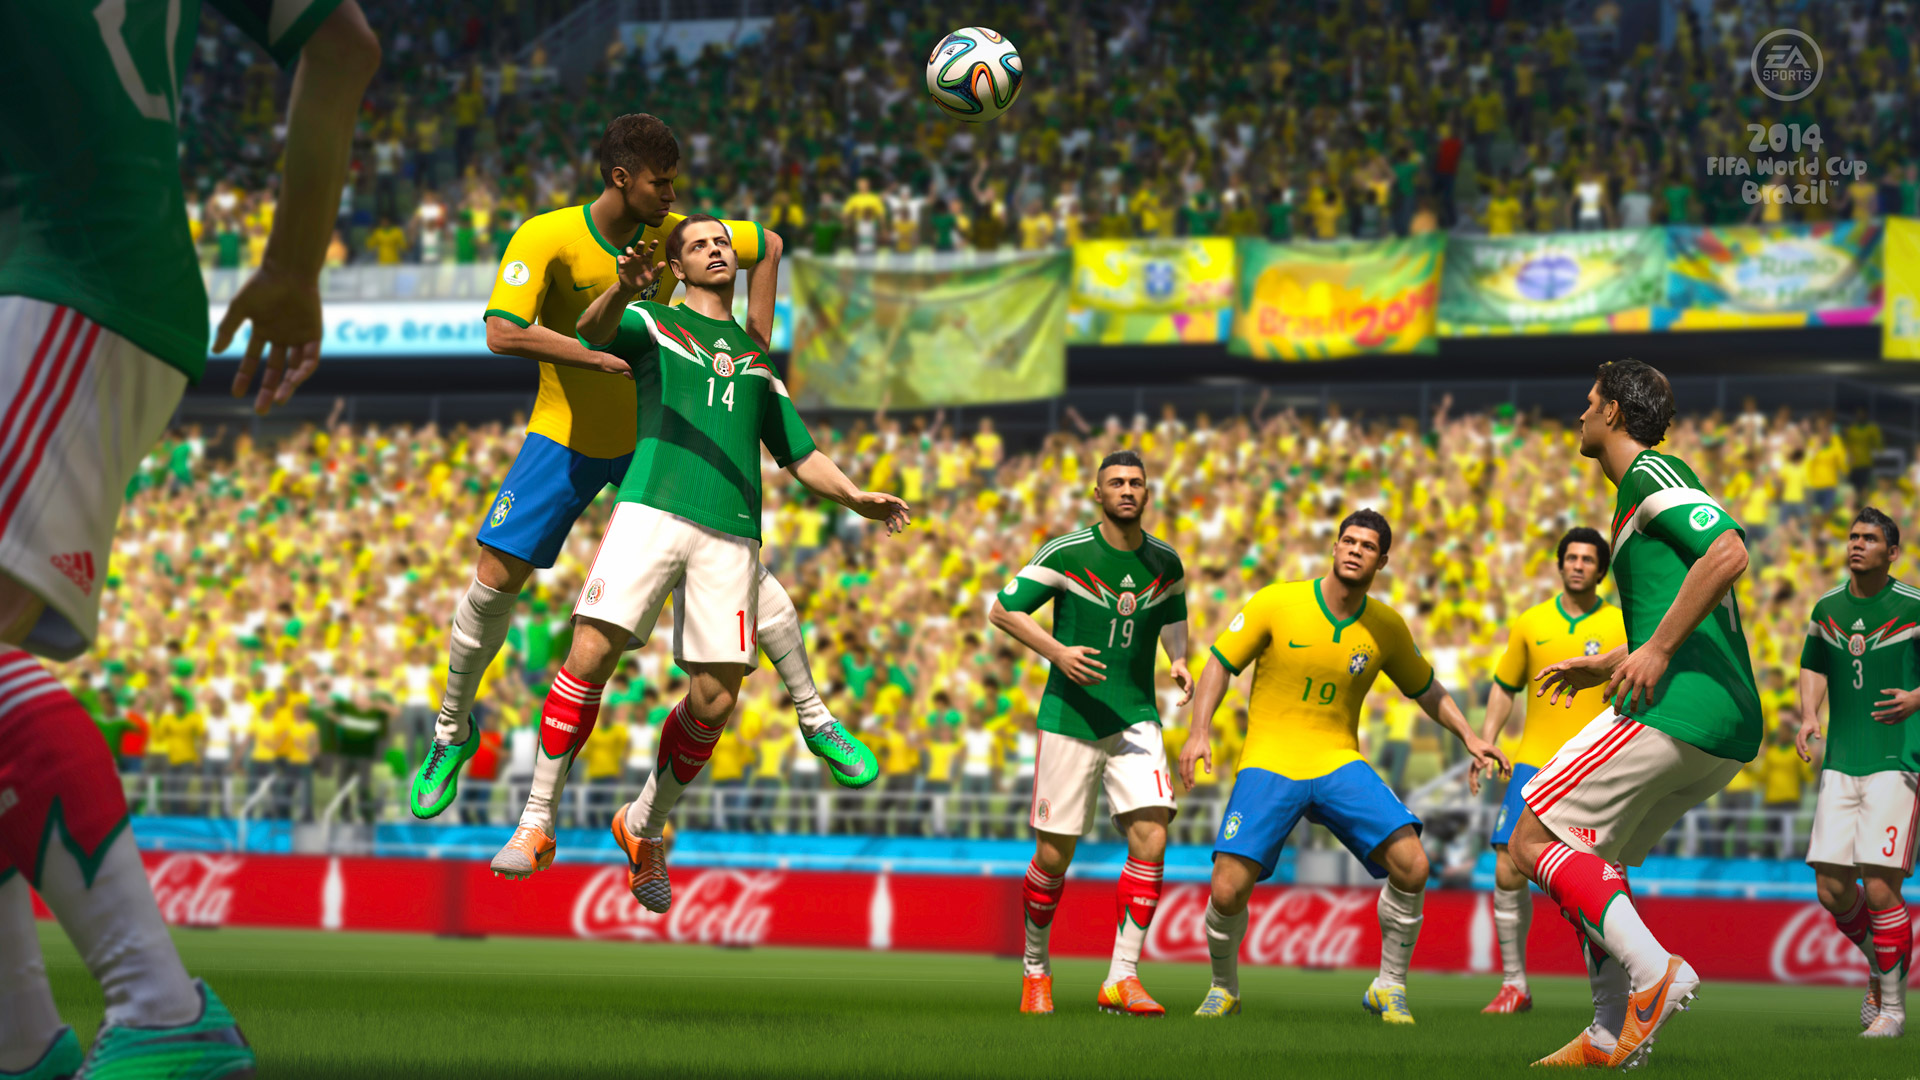 2014 FIFA World Cup Brazil Wallpaper in 1920x1080